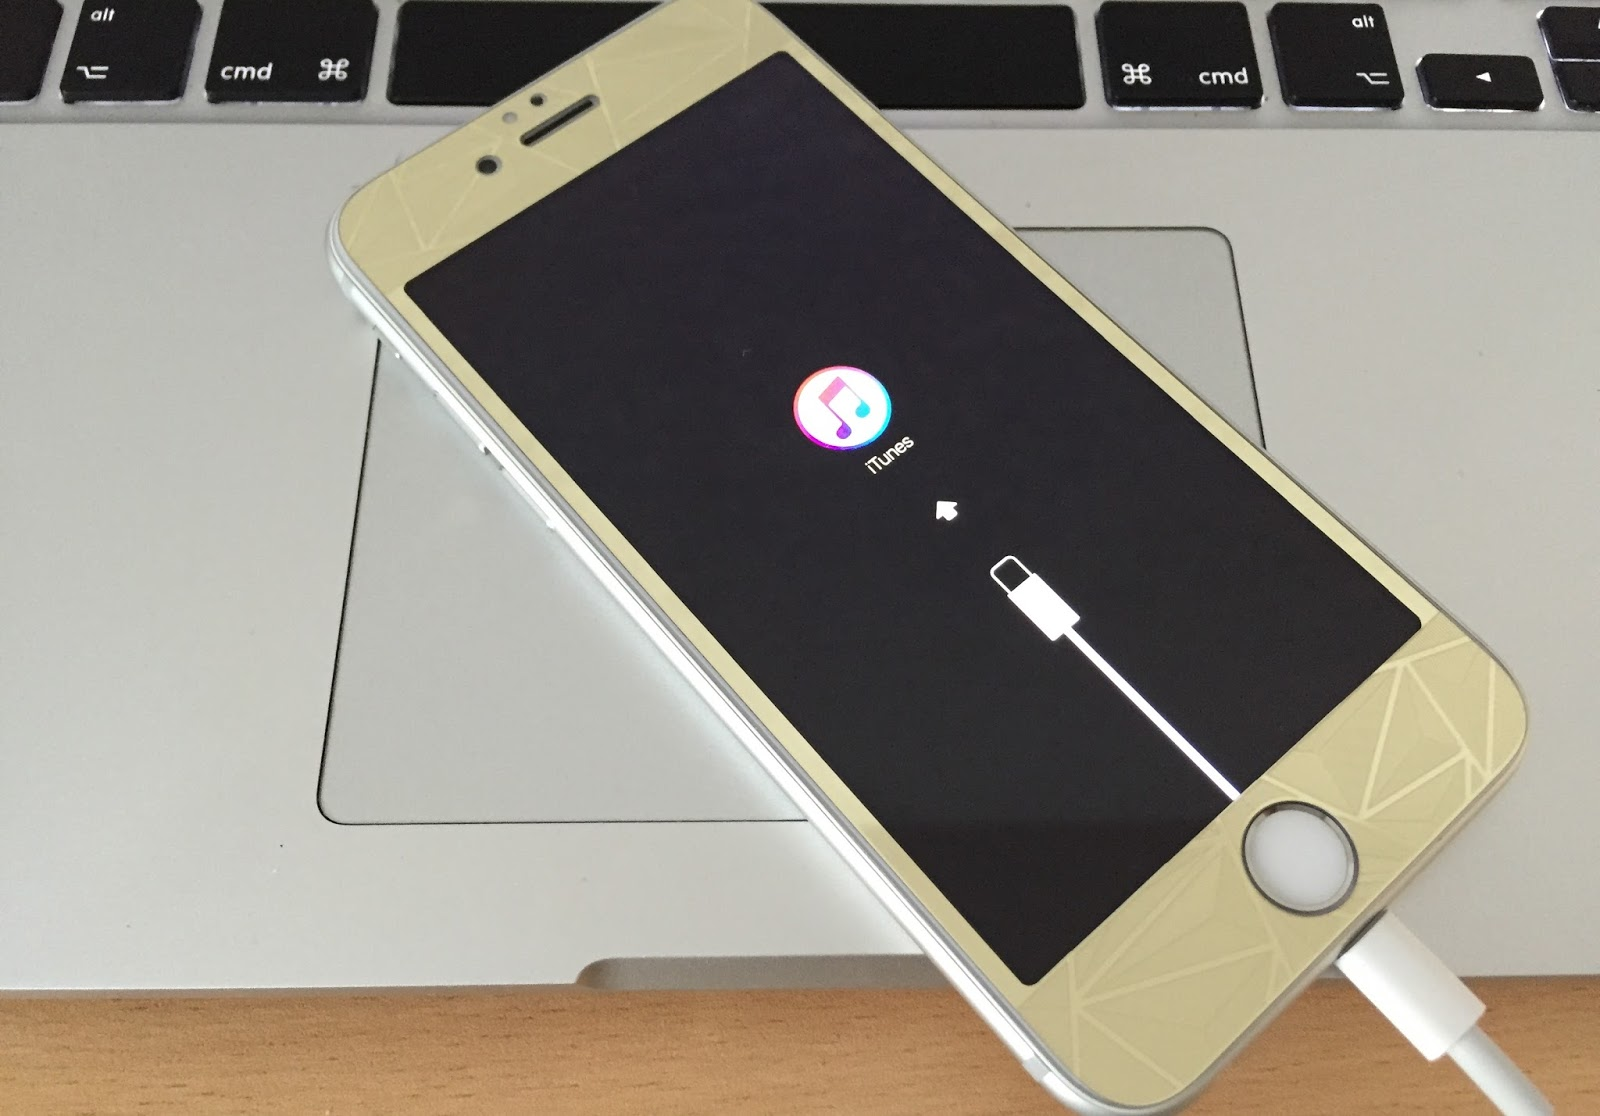 How To Unlock Iphone 5 When Its Disabled Without Itunes